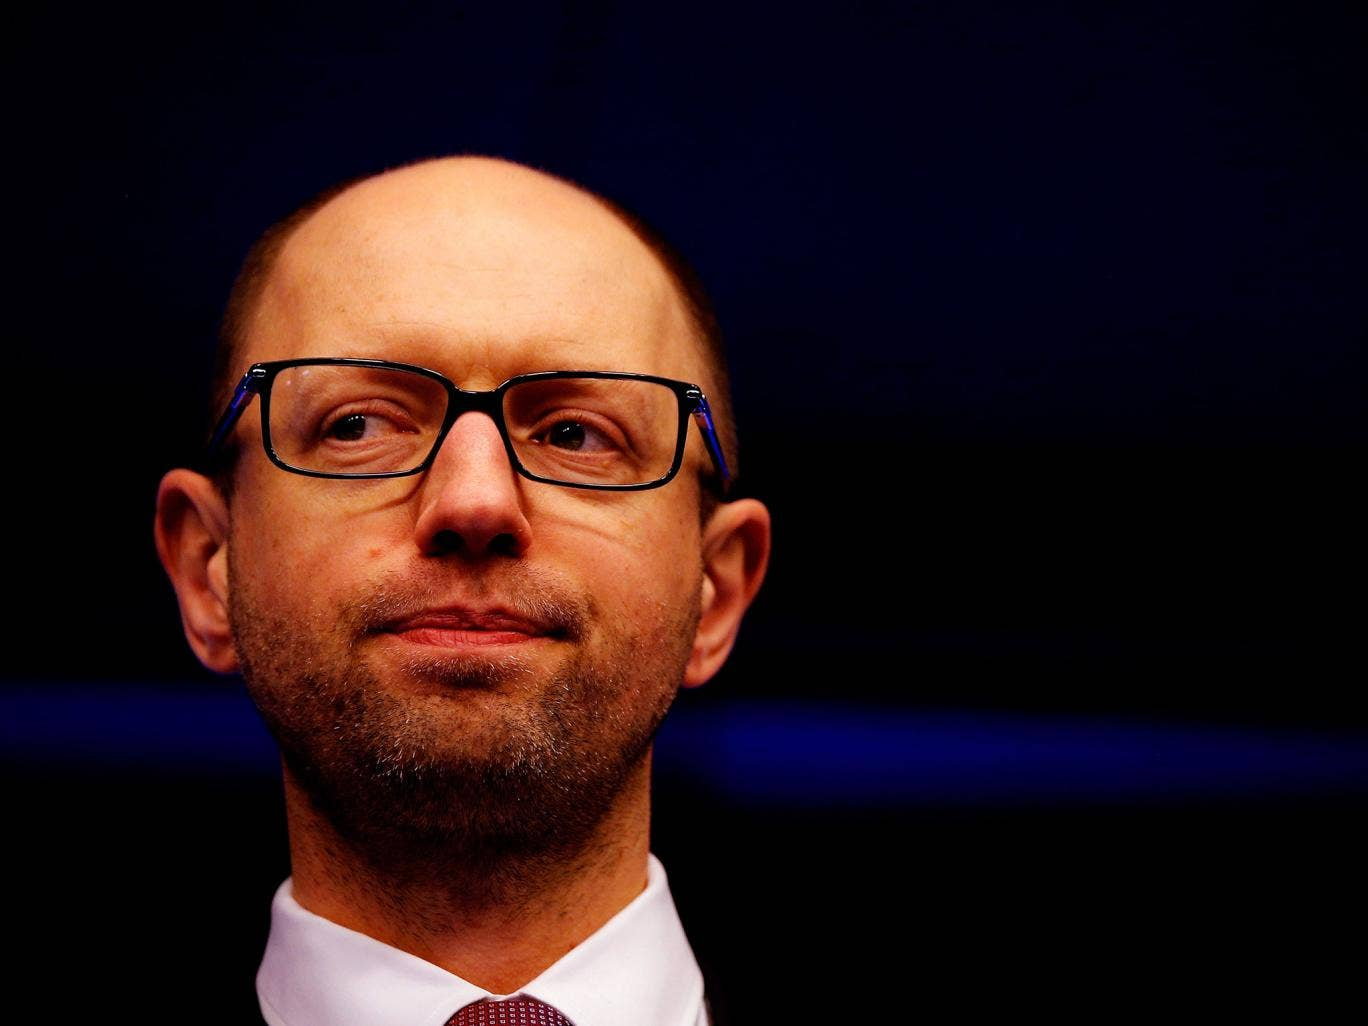 Ukraine Prime Minister, Arseniy Yatseniuk pictured in in Brussels, Belgium.